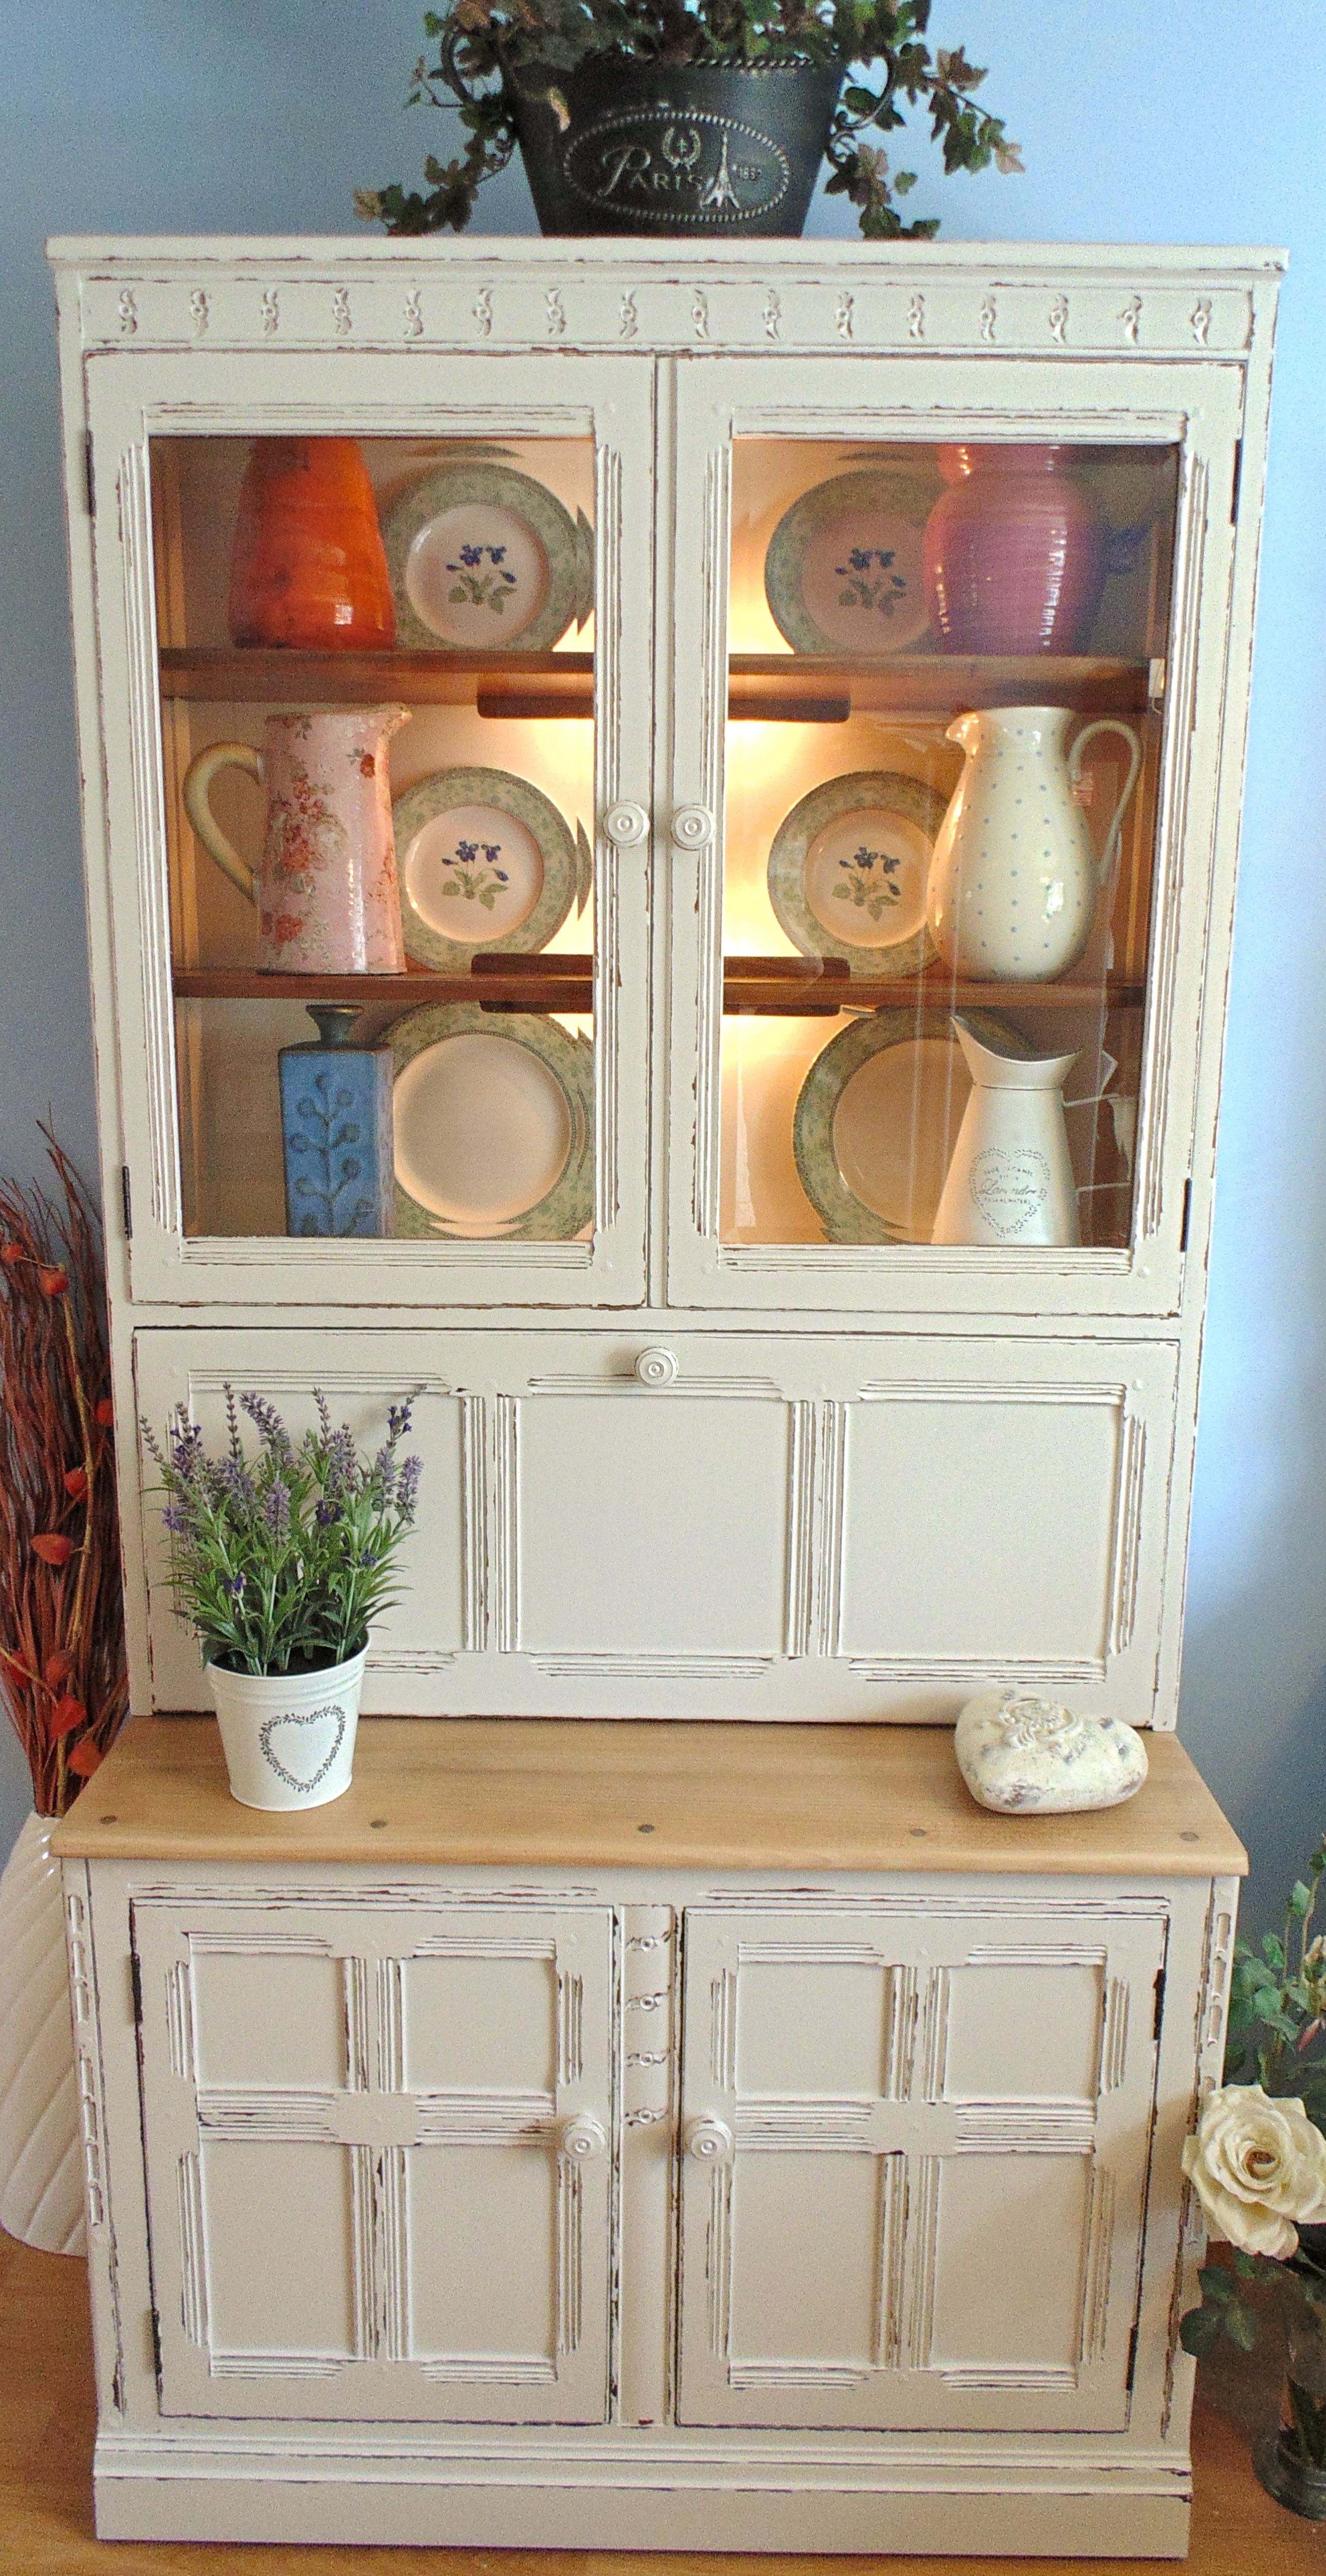 Farrow And Ball Skimming Stone Stunning Ercol Solid Wood Dresser In Farrow And Ball